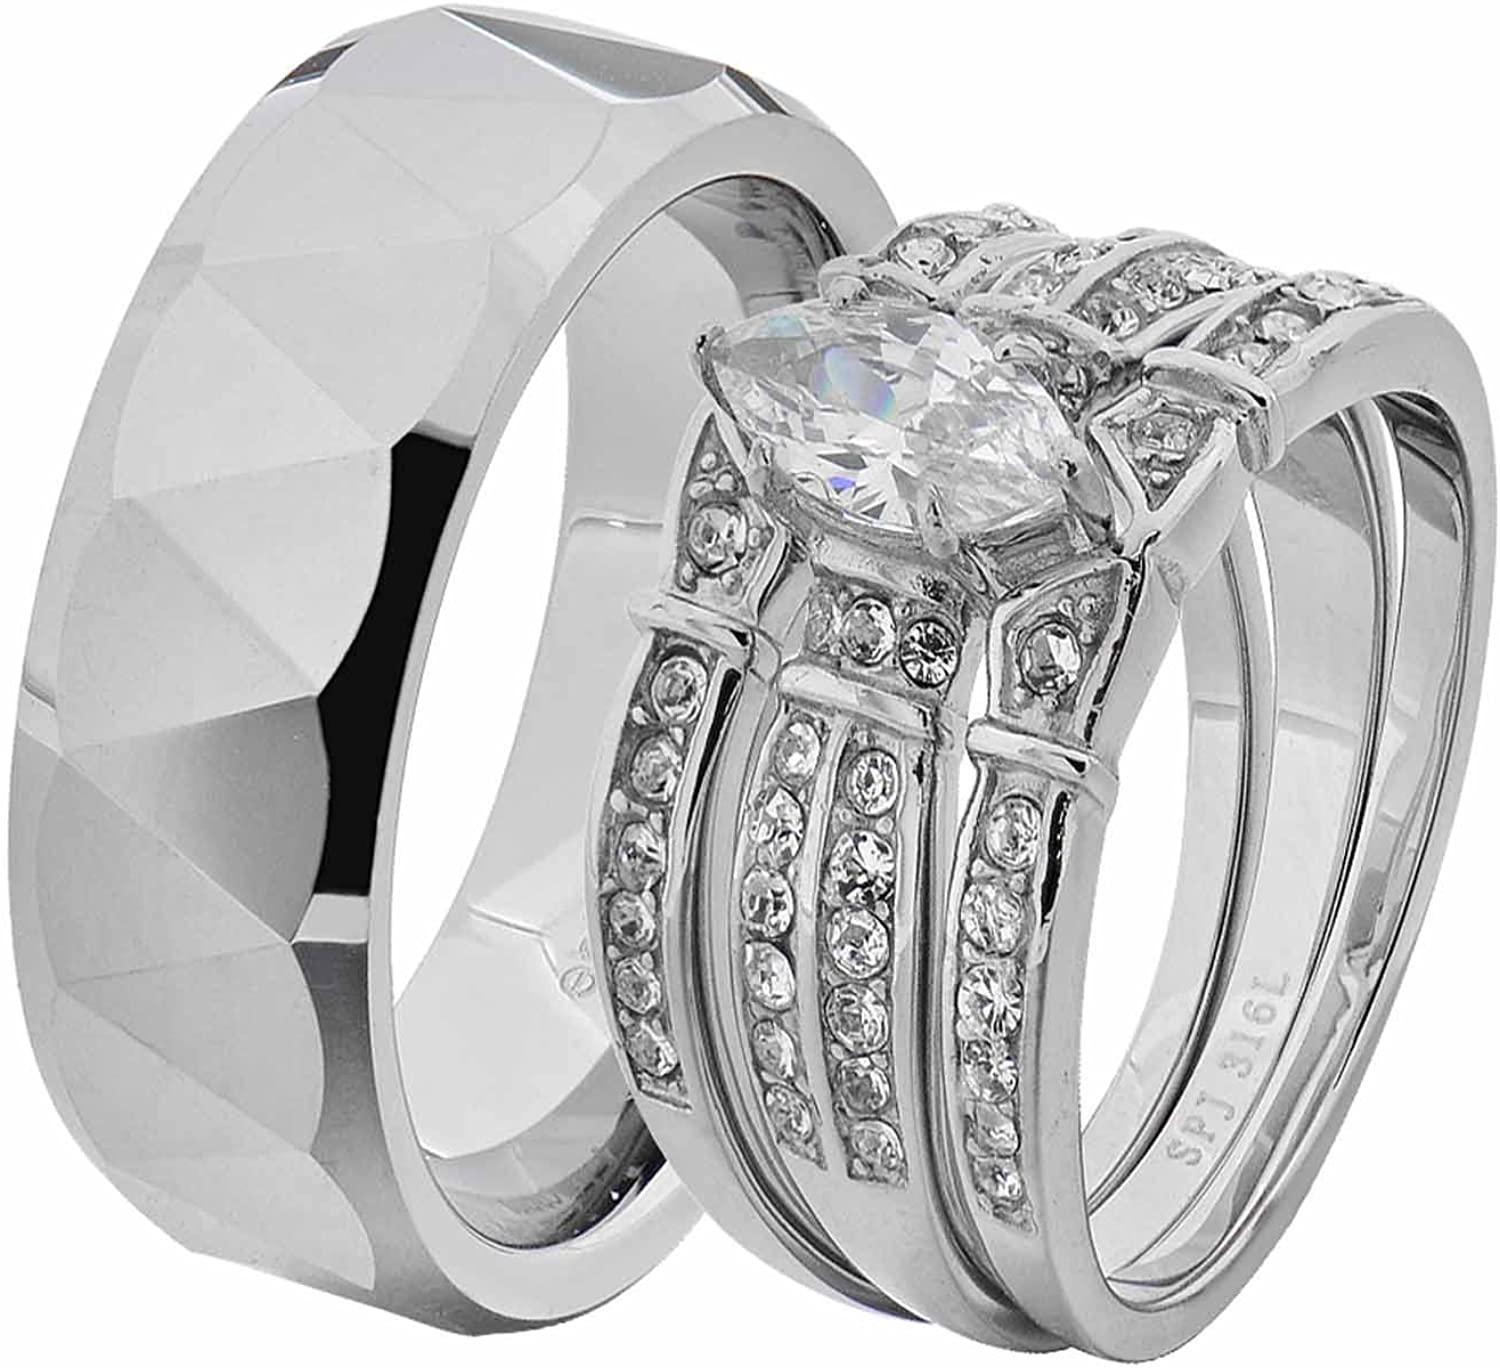 AMDXD Stainless Steel Promise Ring Solitaire Zirconia Heart Engraved Silver Wedding Rings